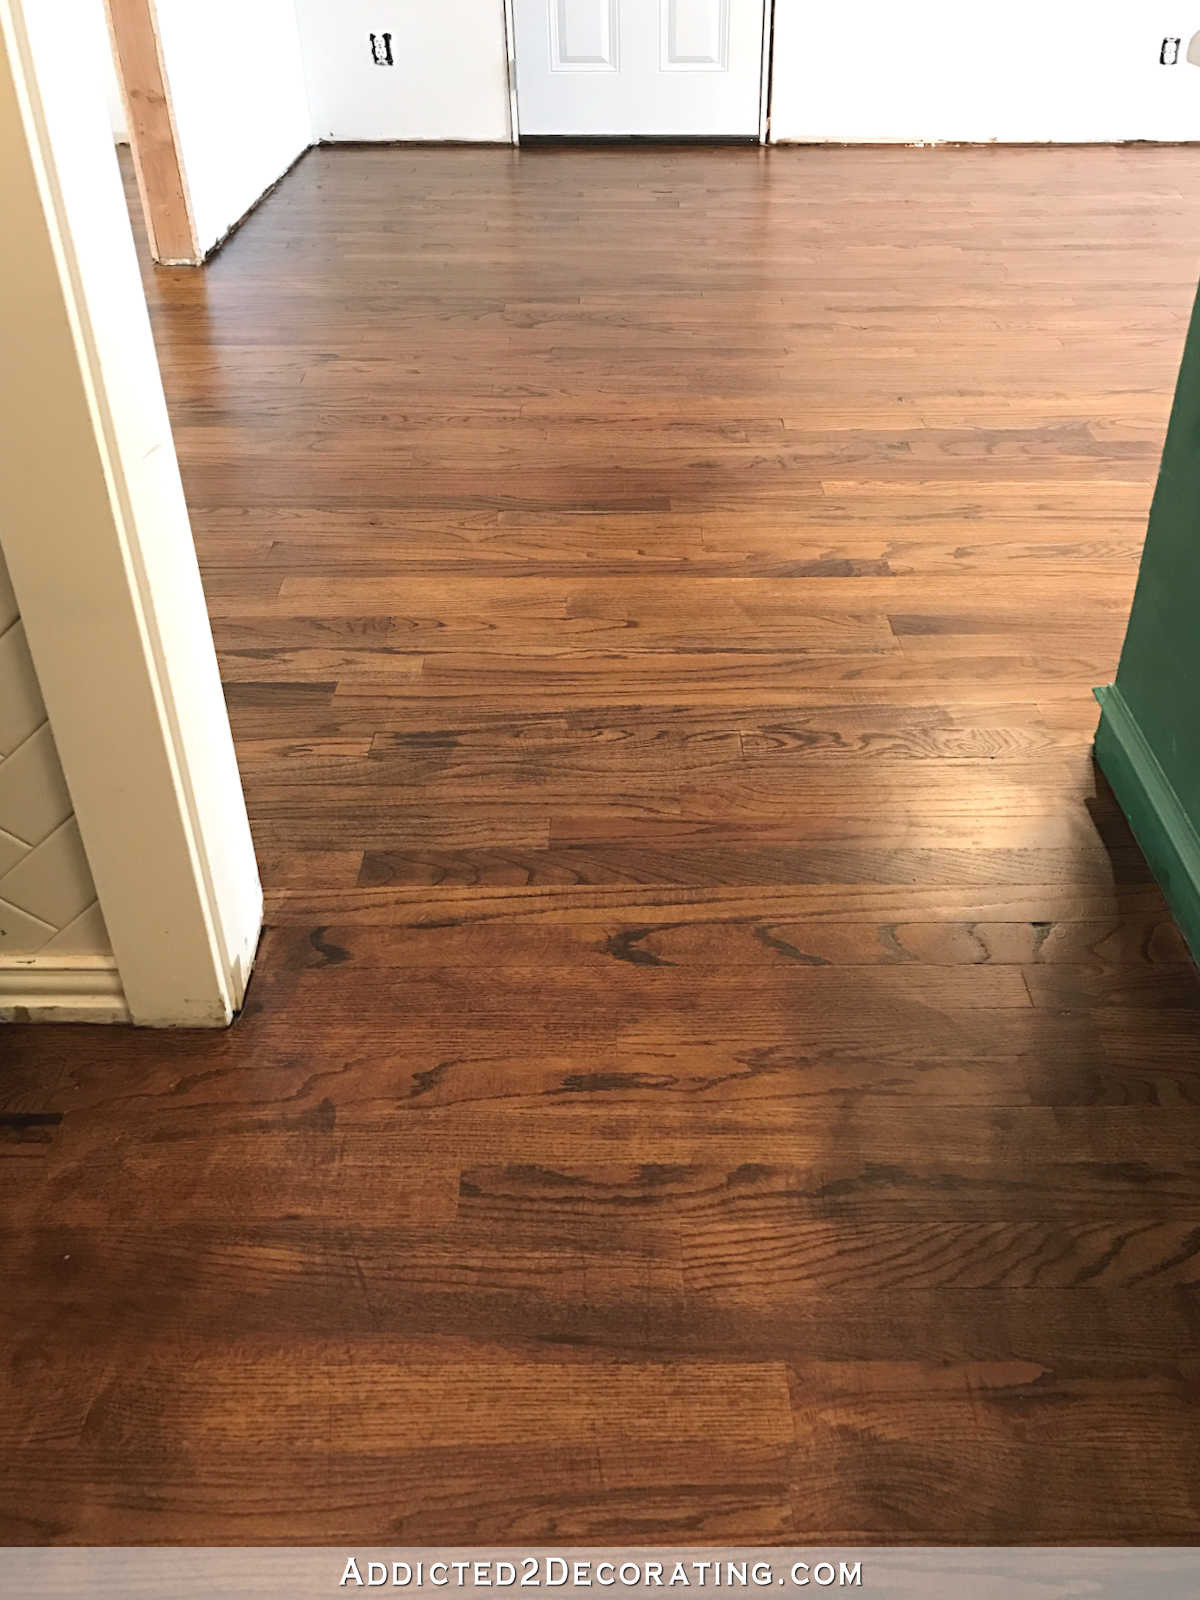 oak hardwood flooring price of cost of refinishing wood floors types hardwood flooring ers guide intended for cost of refinishing wood floors hardwood floor cleaning how long does it take to refinish hardwood